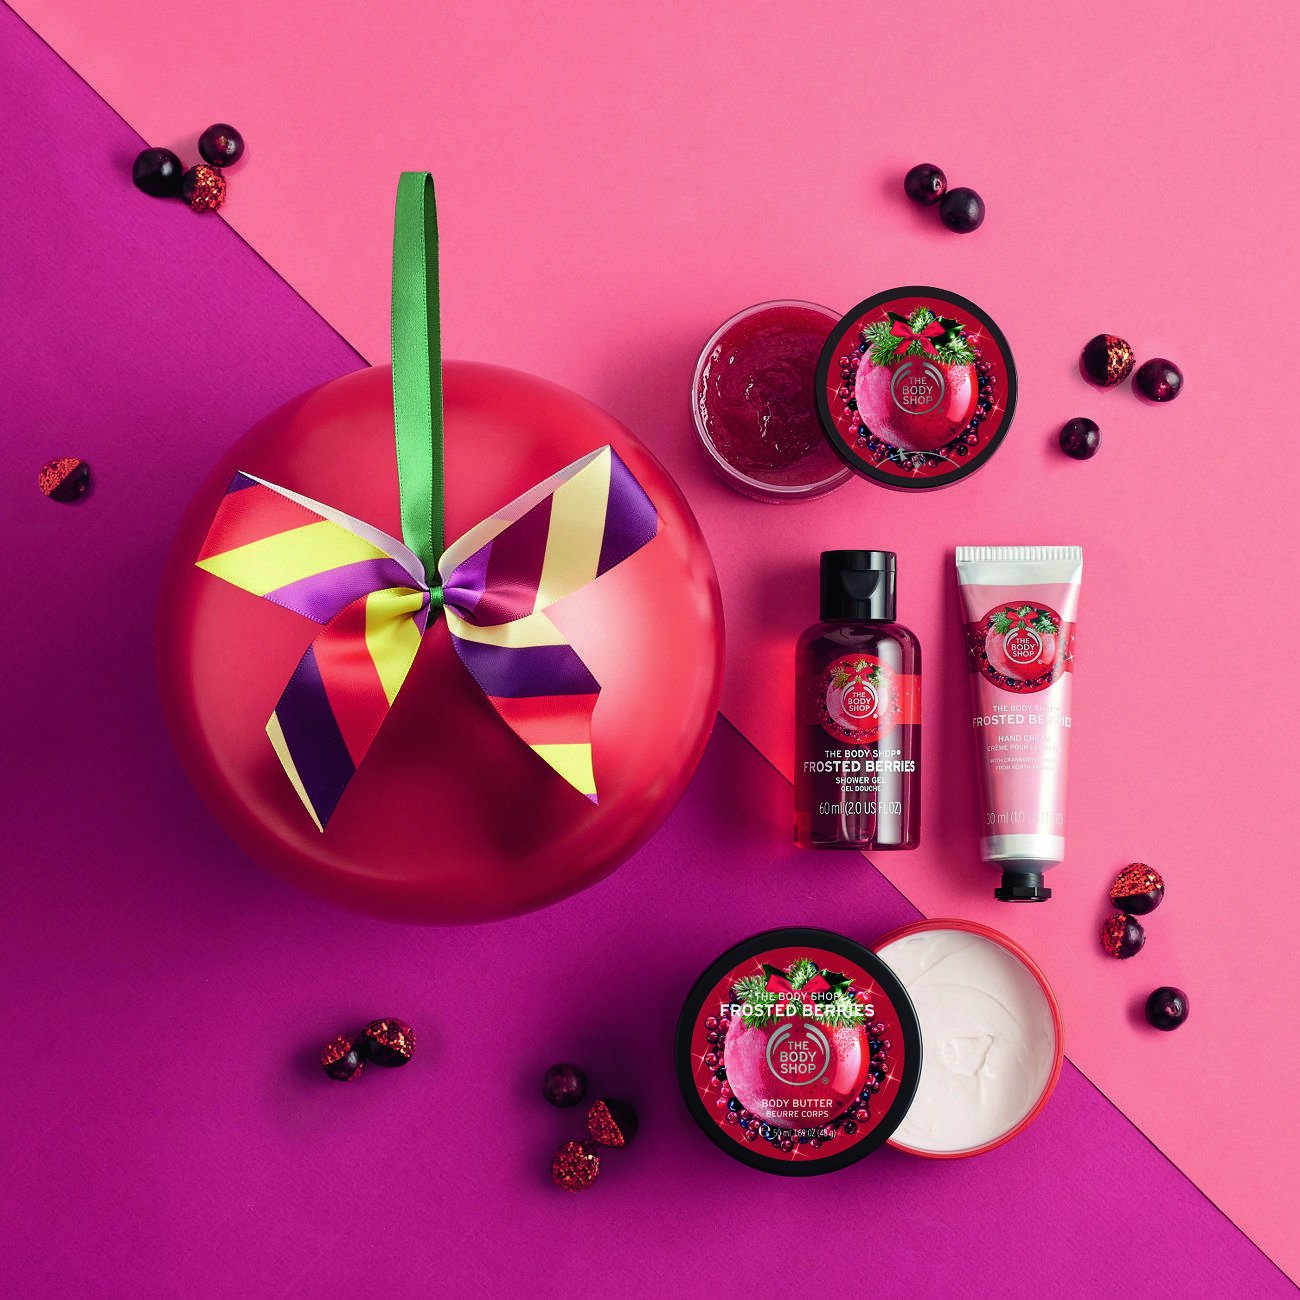 Idealny prezent pod choinkę od The Body Shop